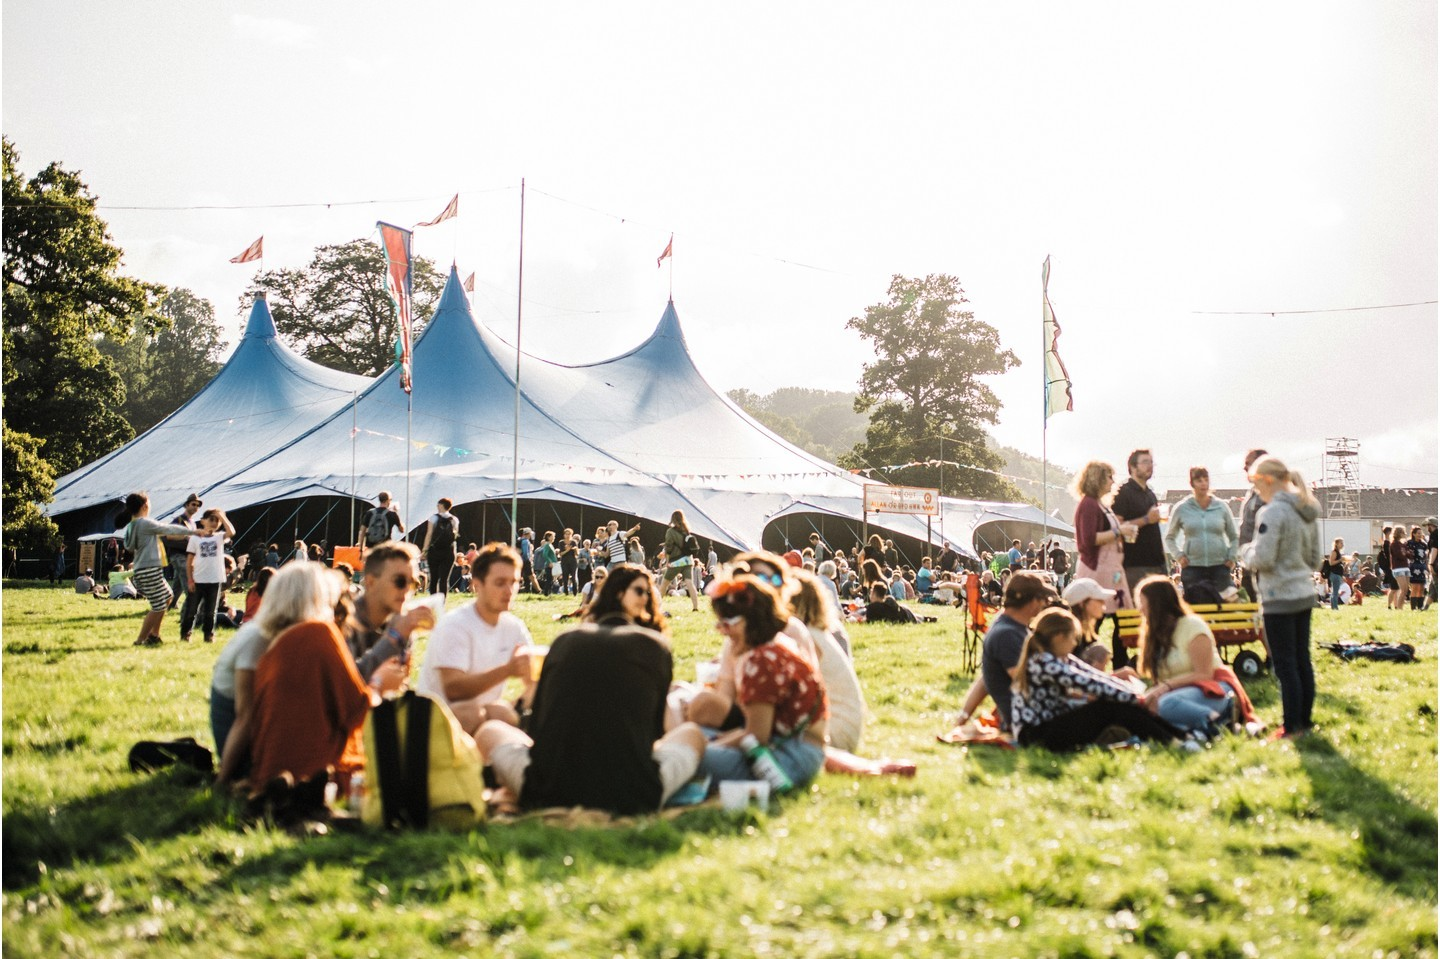 Groups of festival-goers sit under large tents in the sunshine at Green Man 2017